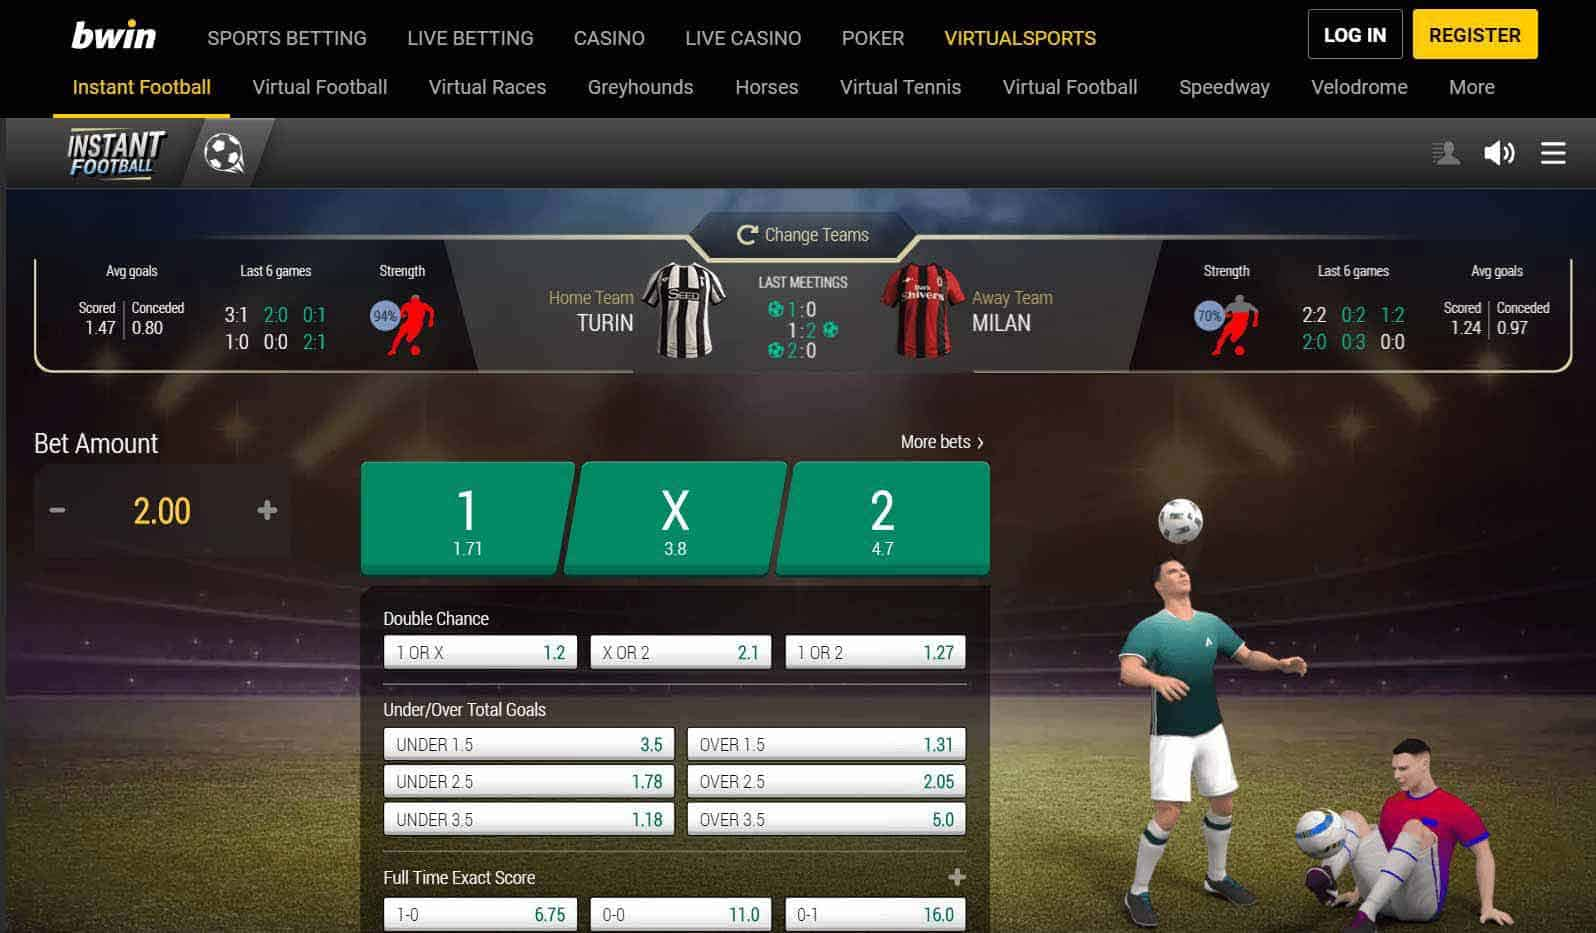 screenshot of virtual football betting at bwin